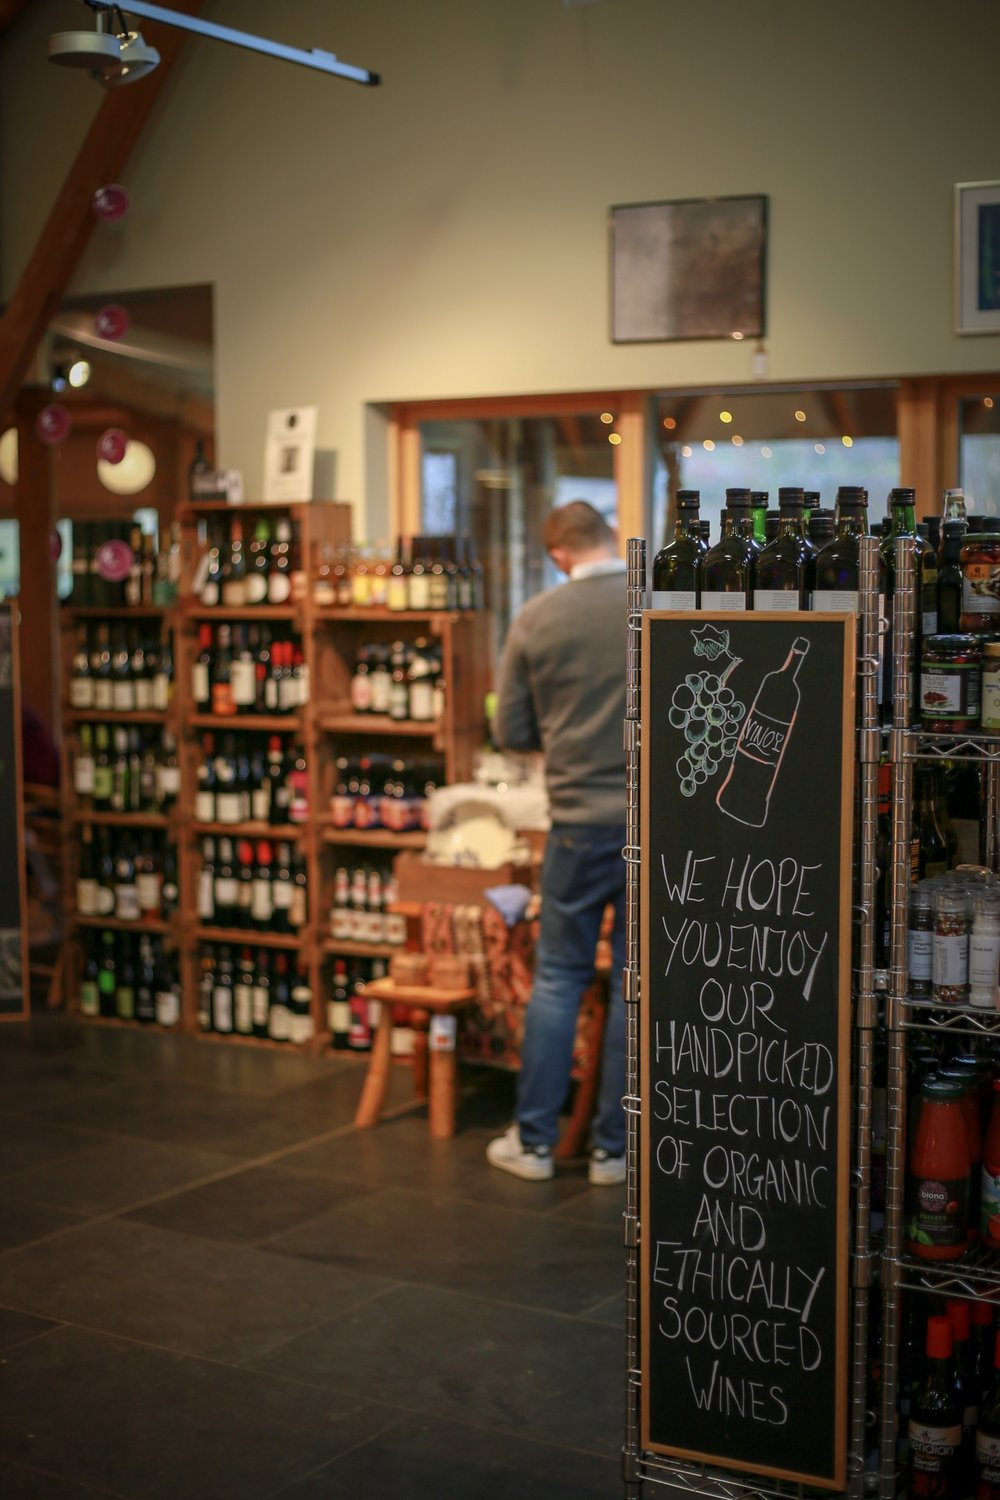 Loch Arthur Farm Shop & Cafe includes a selection of ethically sourced and organic wines